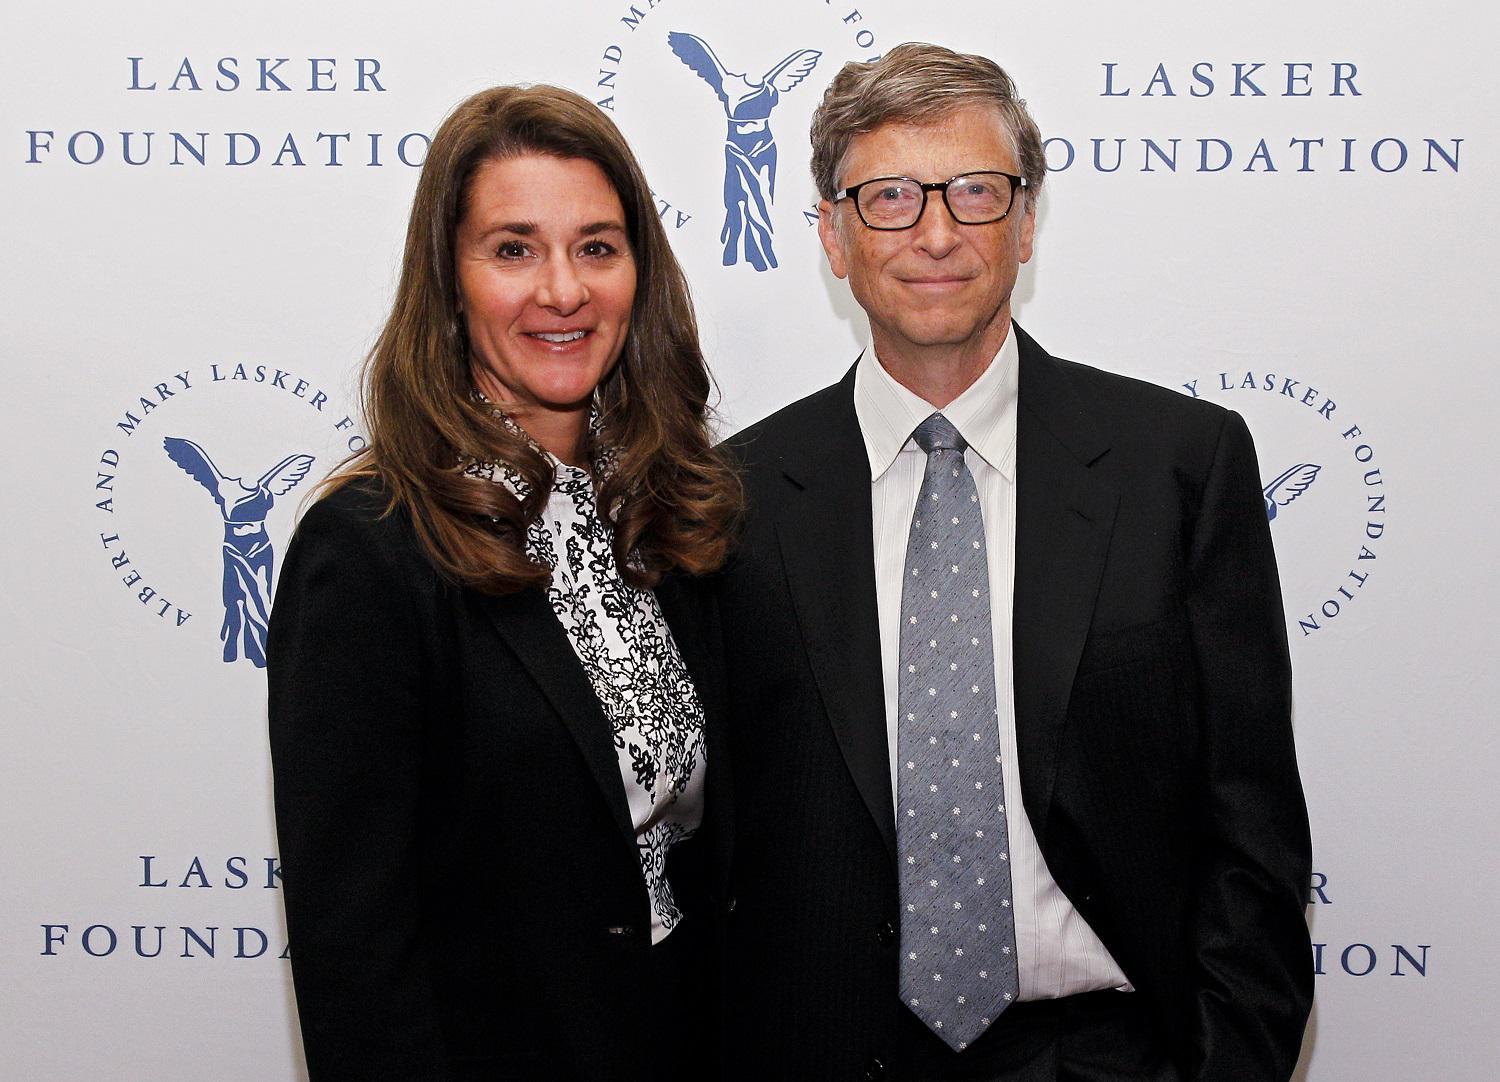 Bill Gates Just Revealed His Goal For The Rest Of His Life